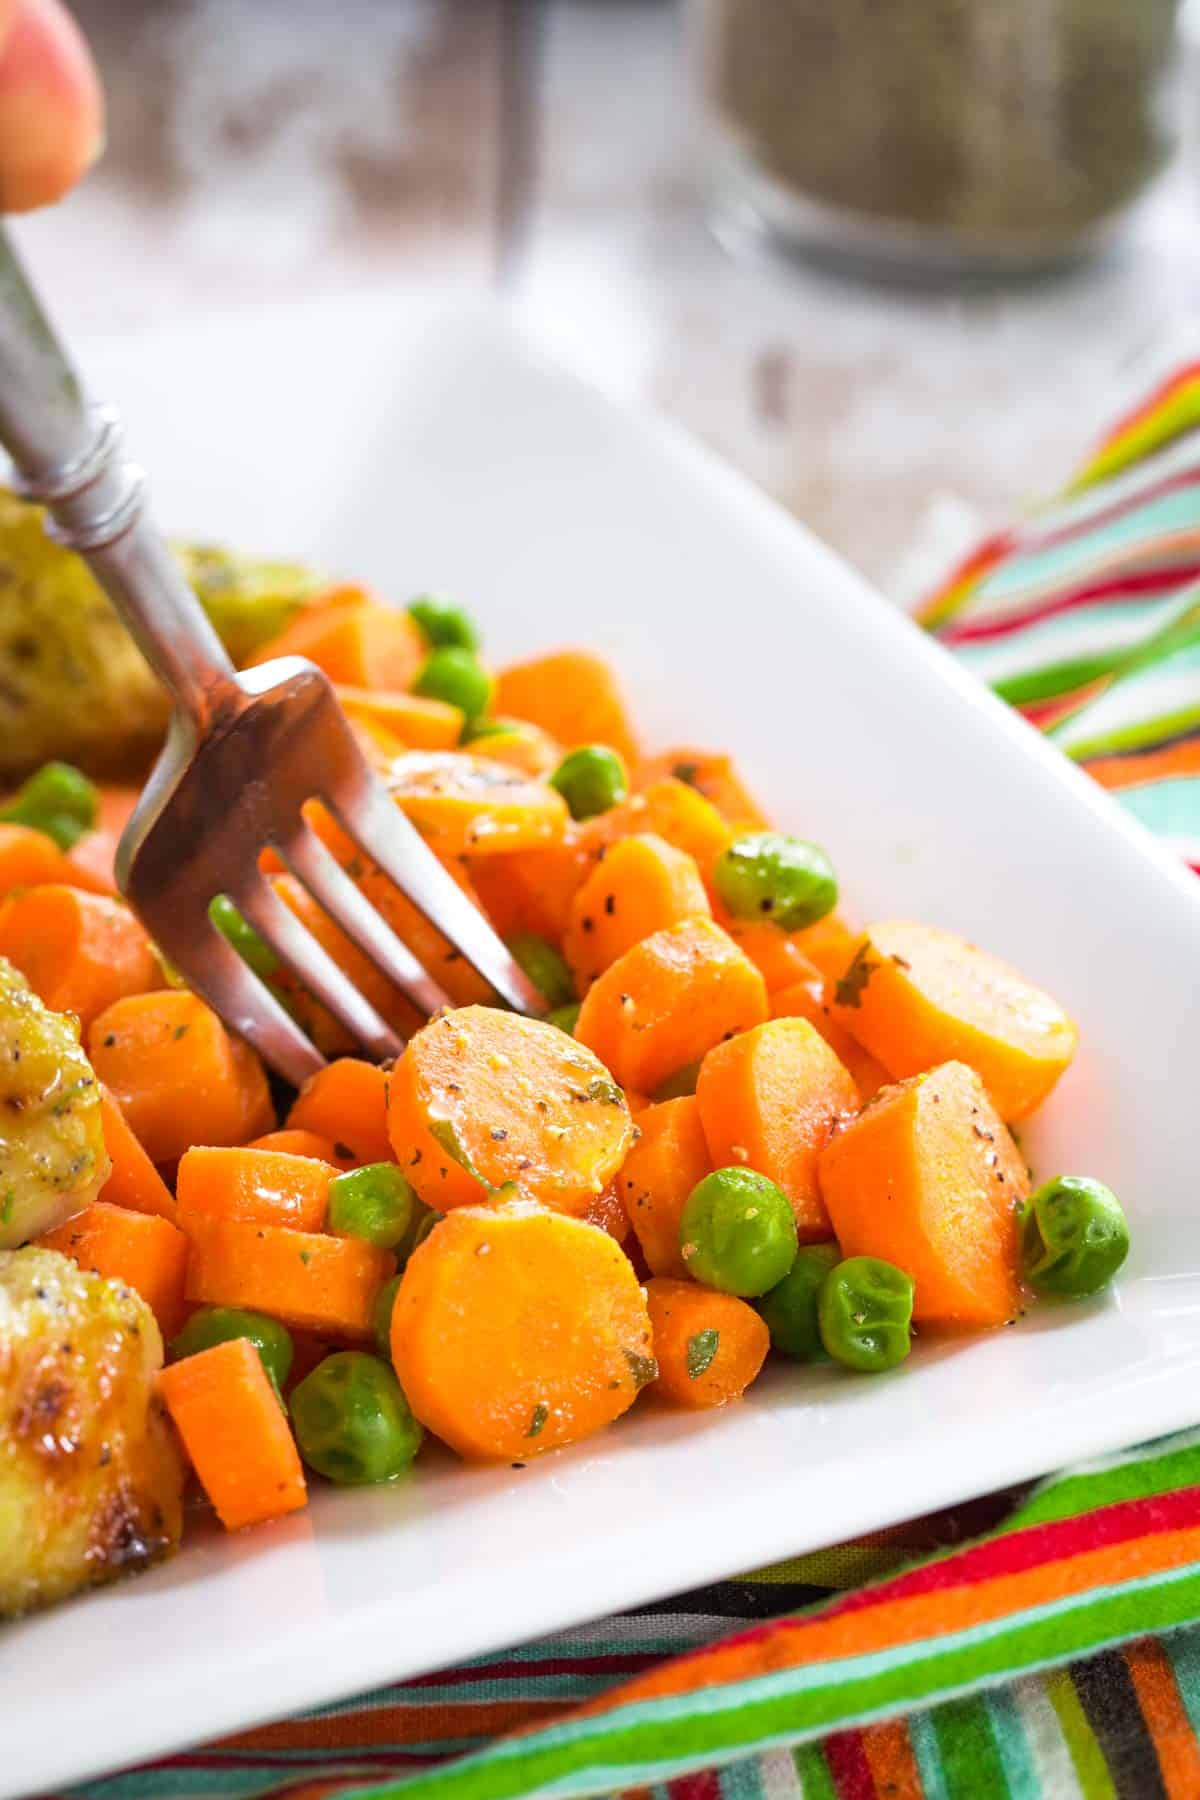 fork in a pile of carrots and peas on the edge of a white plate on top of a striped cloth napkin